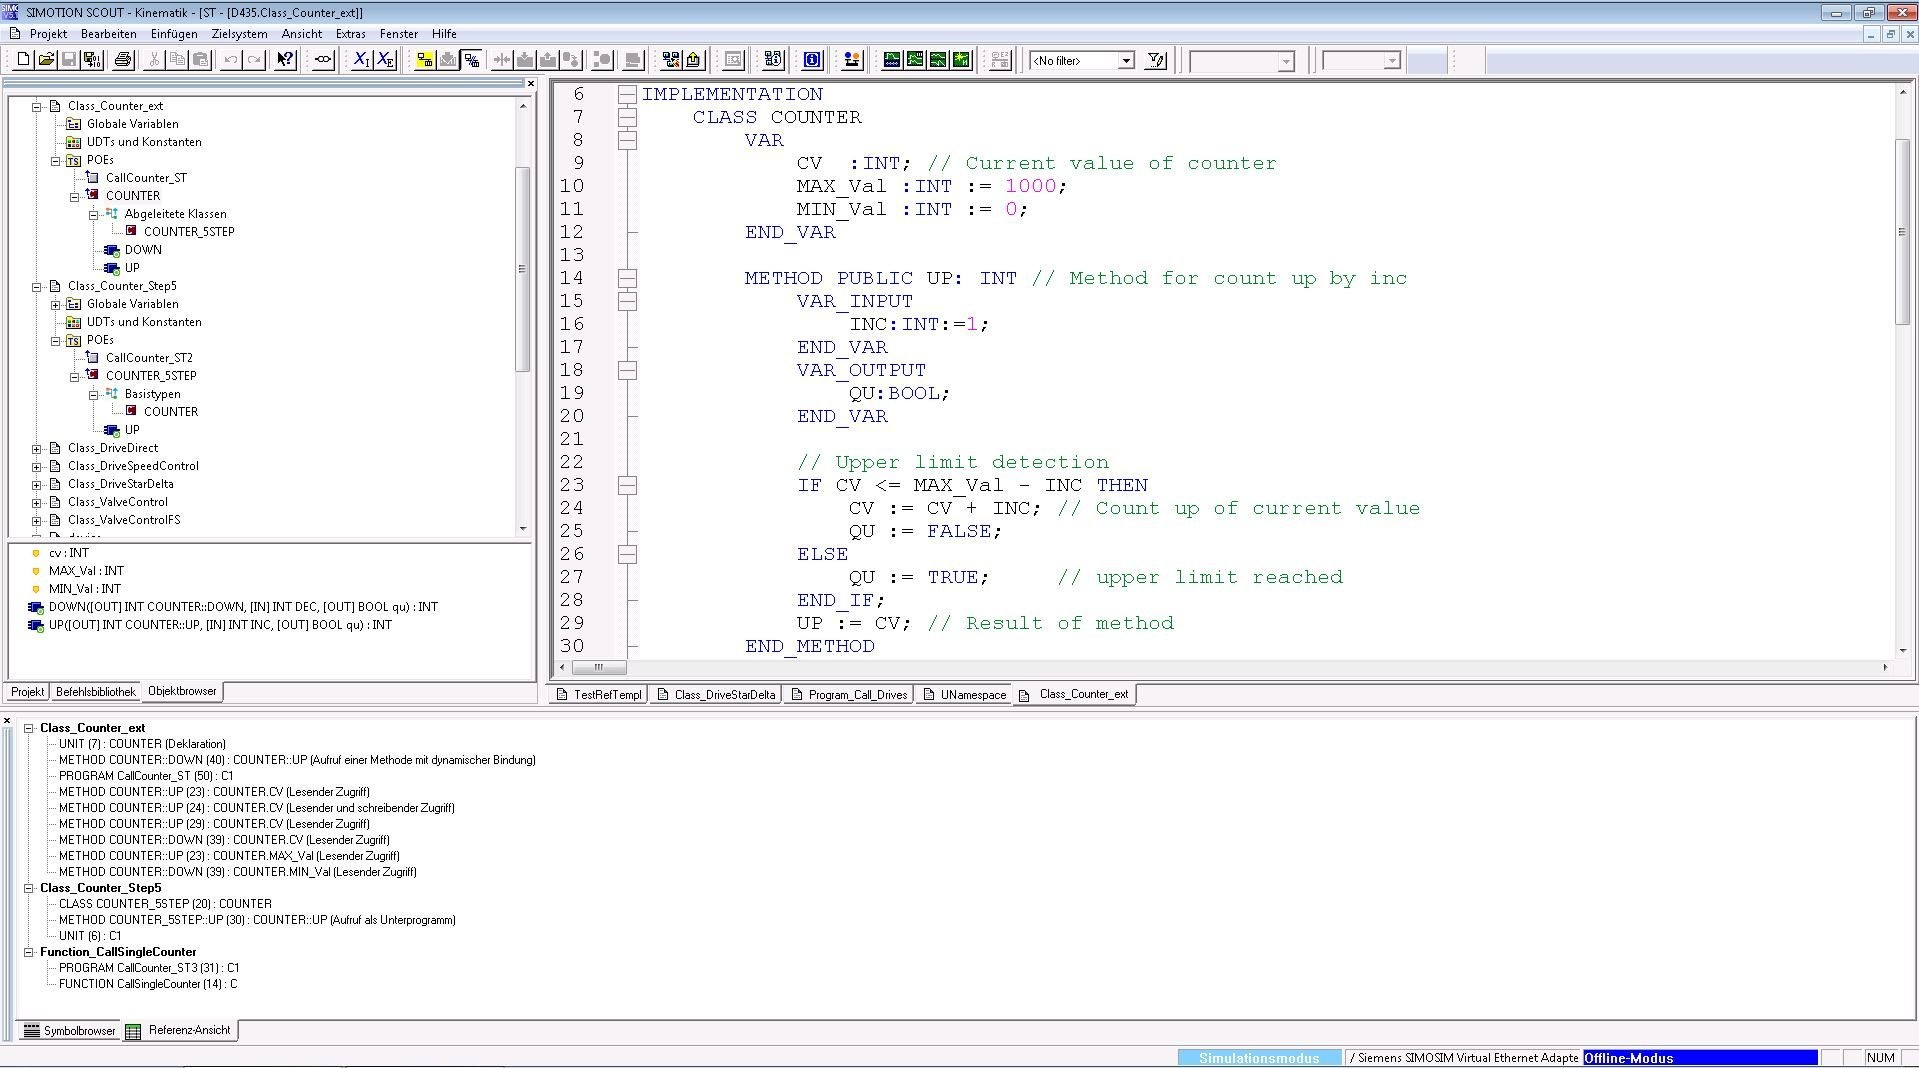 Working with Siemens SIMOTION SCOUT 5.3 SP1 full license